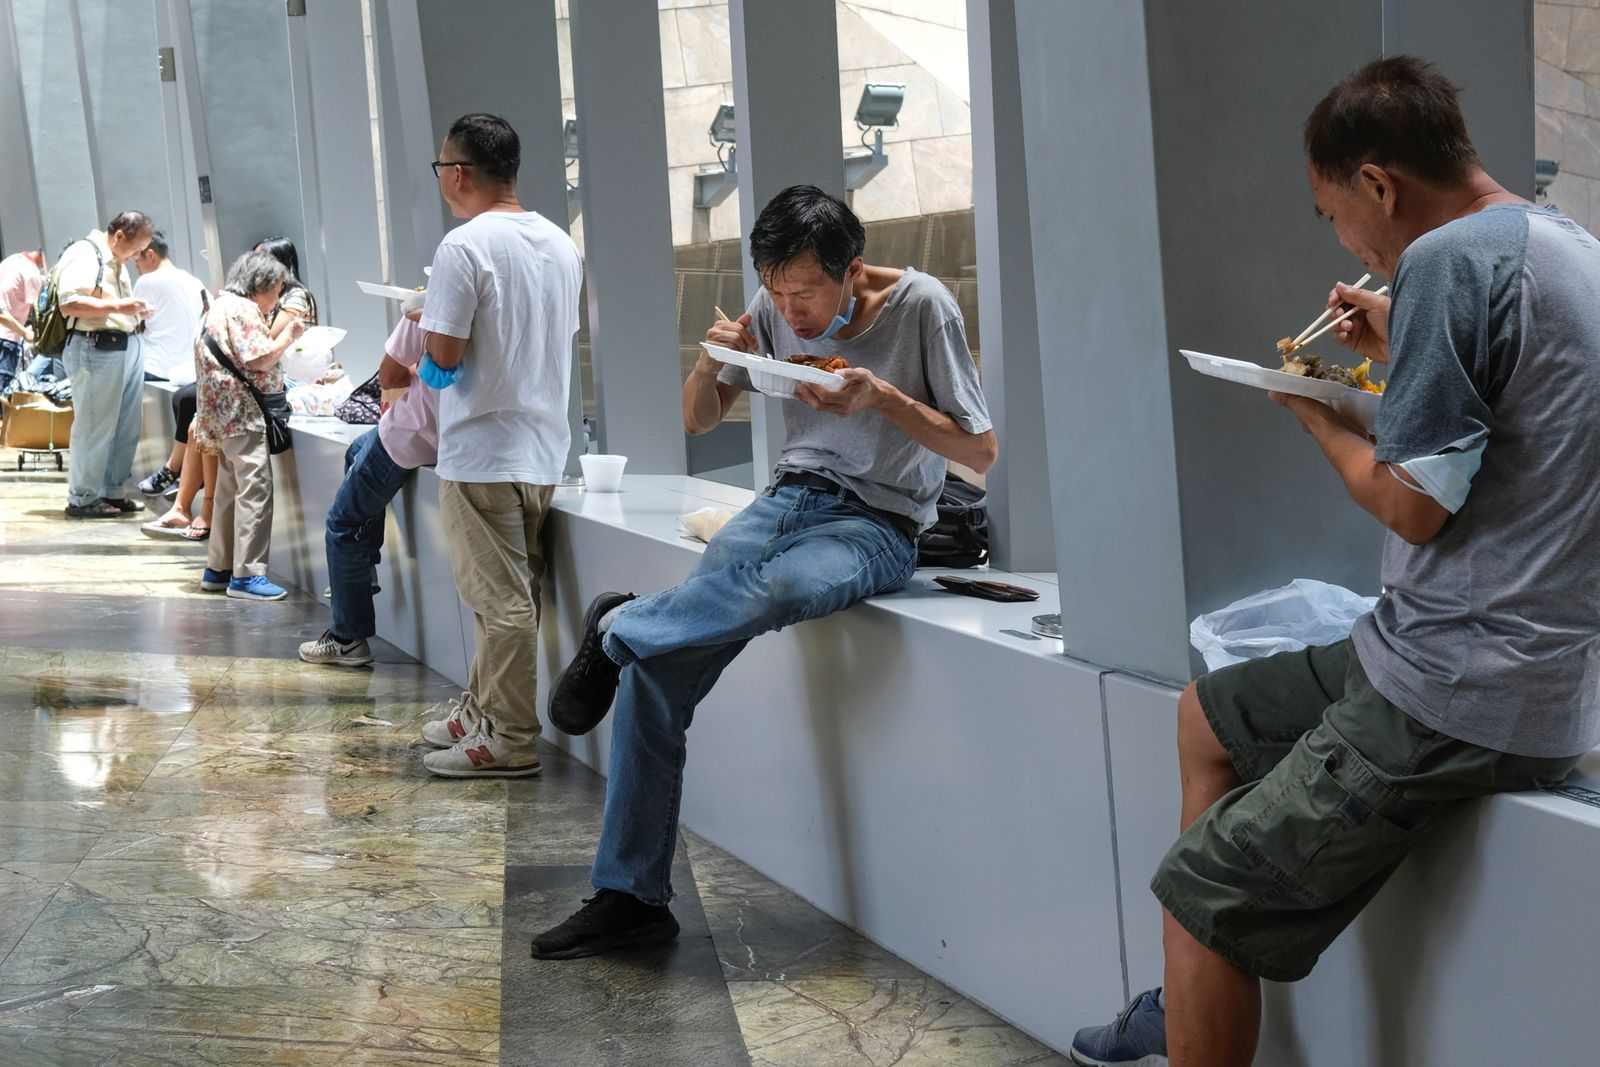 People have lunch at a mall after the government banned dine-in services, following the coronavirus disease (COVID-19) outbreak in Hong Kong